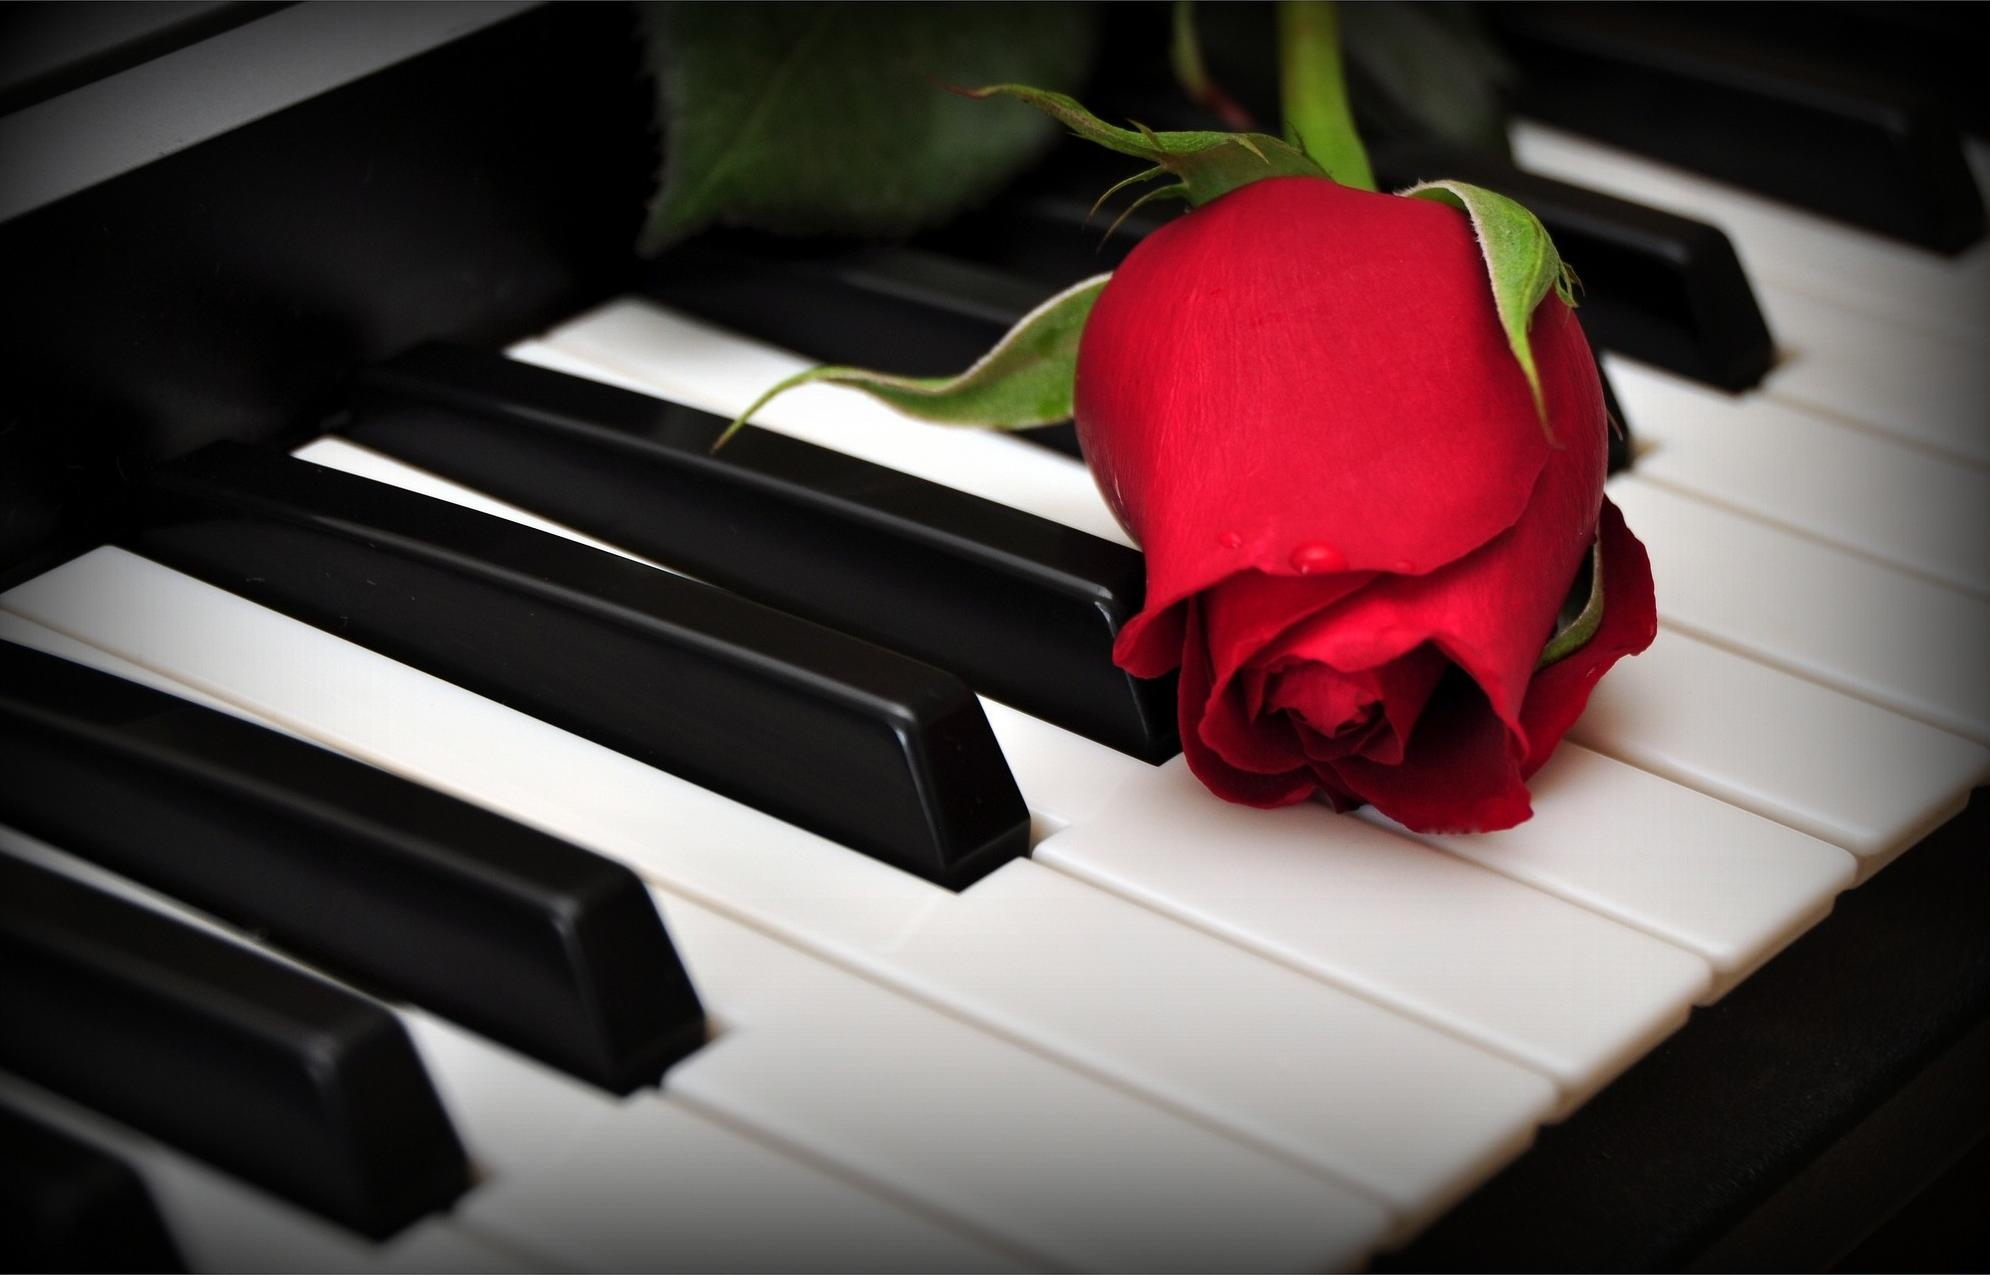 127939 download wallpaper Flowers, Flower, Keys, Roses, Piano screensavers and pictures for free